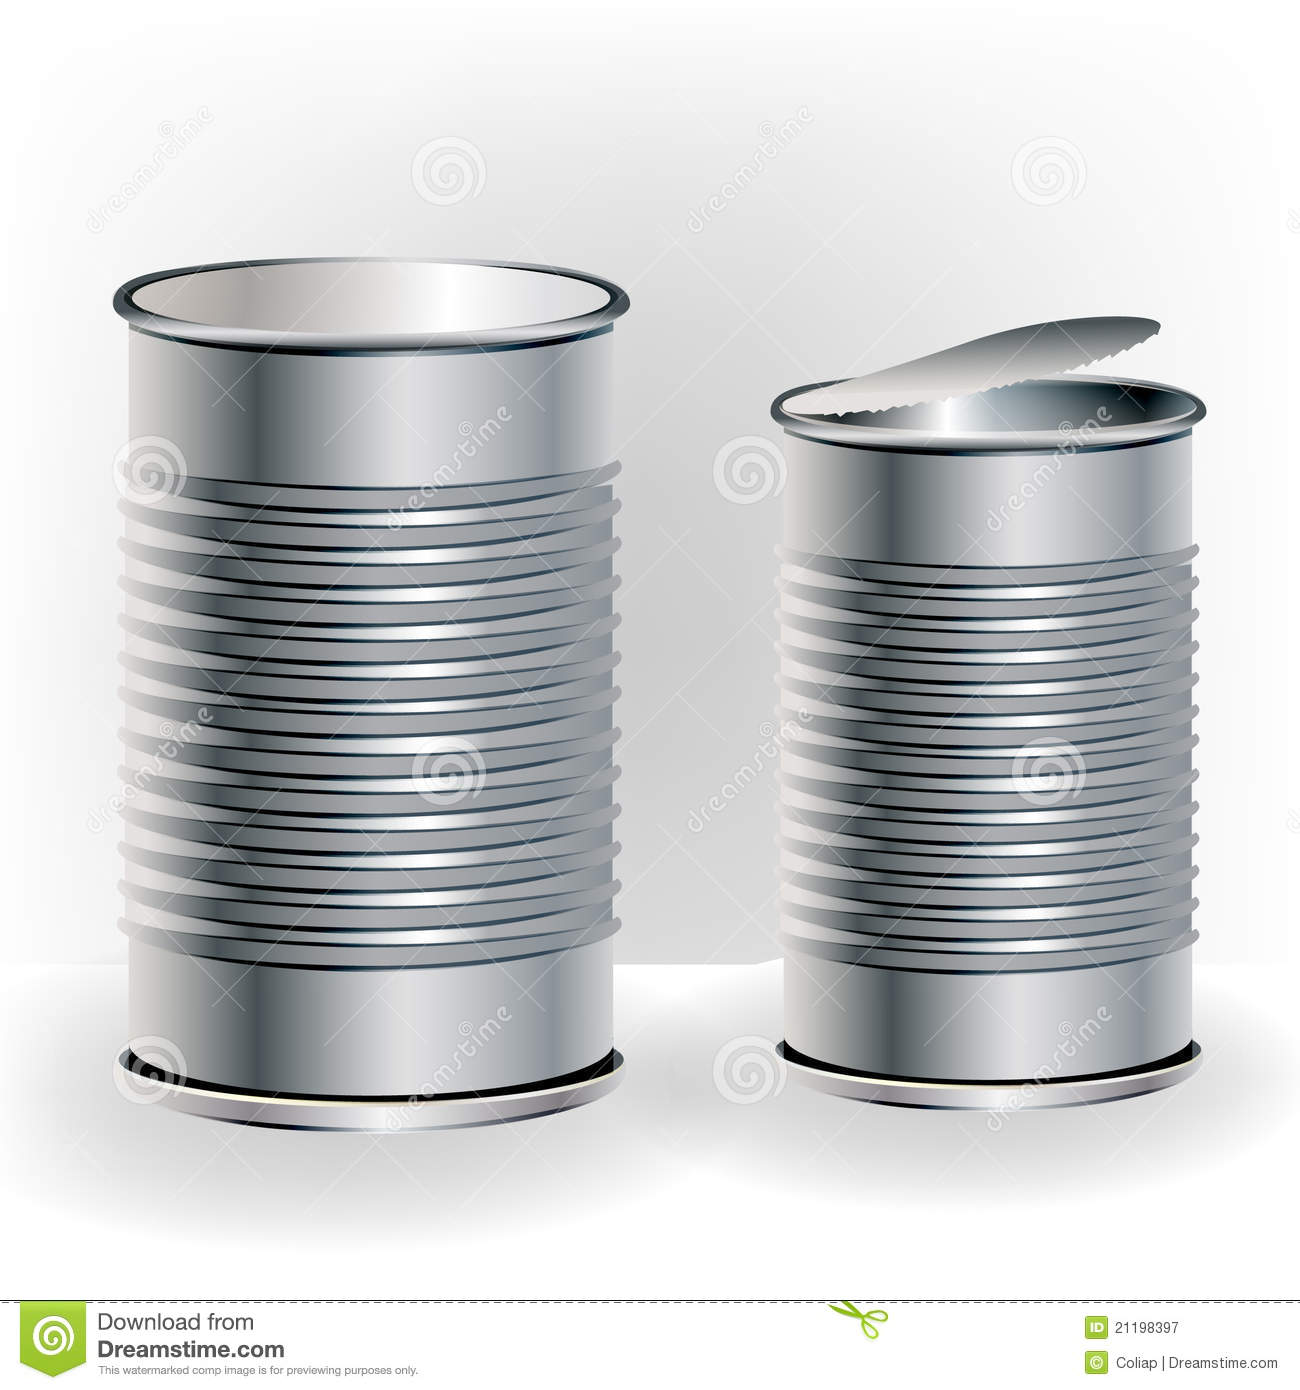 Aluminum food cans royalty free stock photography image for Aluminum cuisine